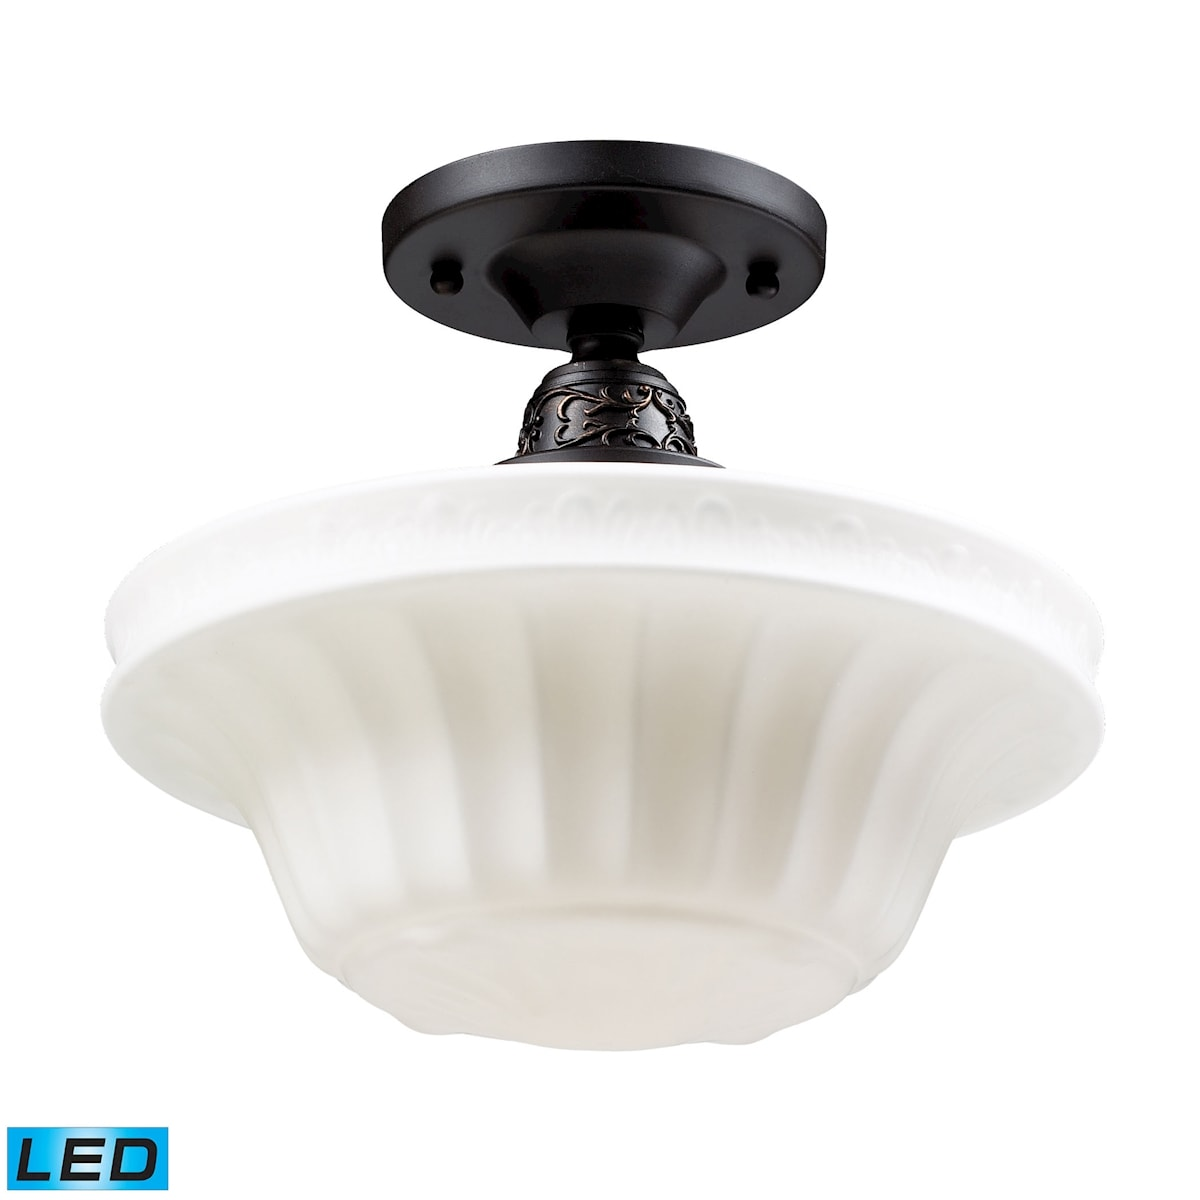 EL-66221-1-LED_Quinton Parlor Oiled Bronze Semi-Flush - LED Offering Up To 800 Lumens (60 Watt Equivalent) with Ful